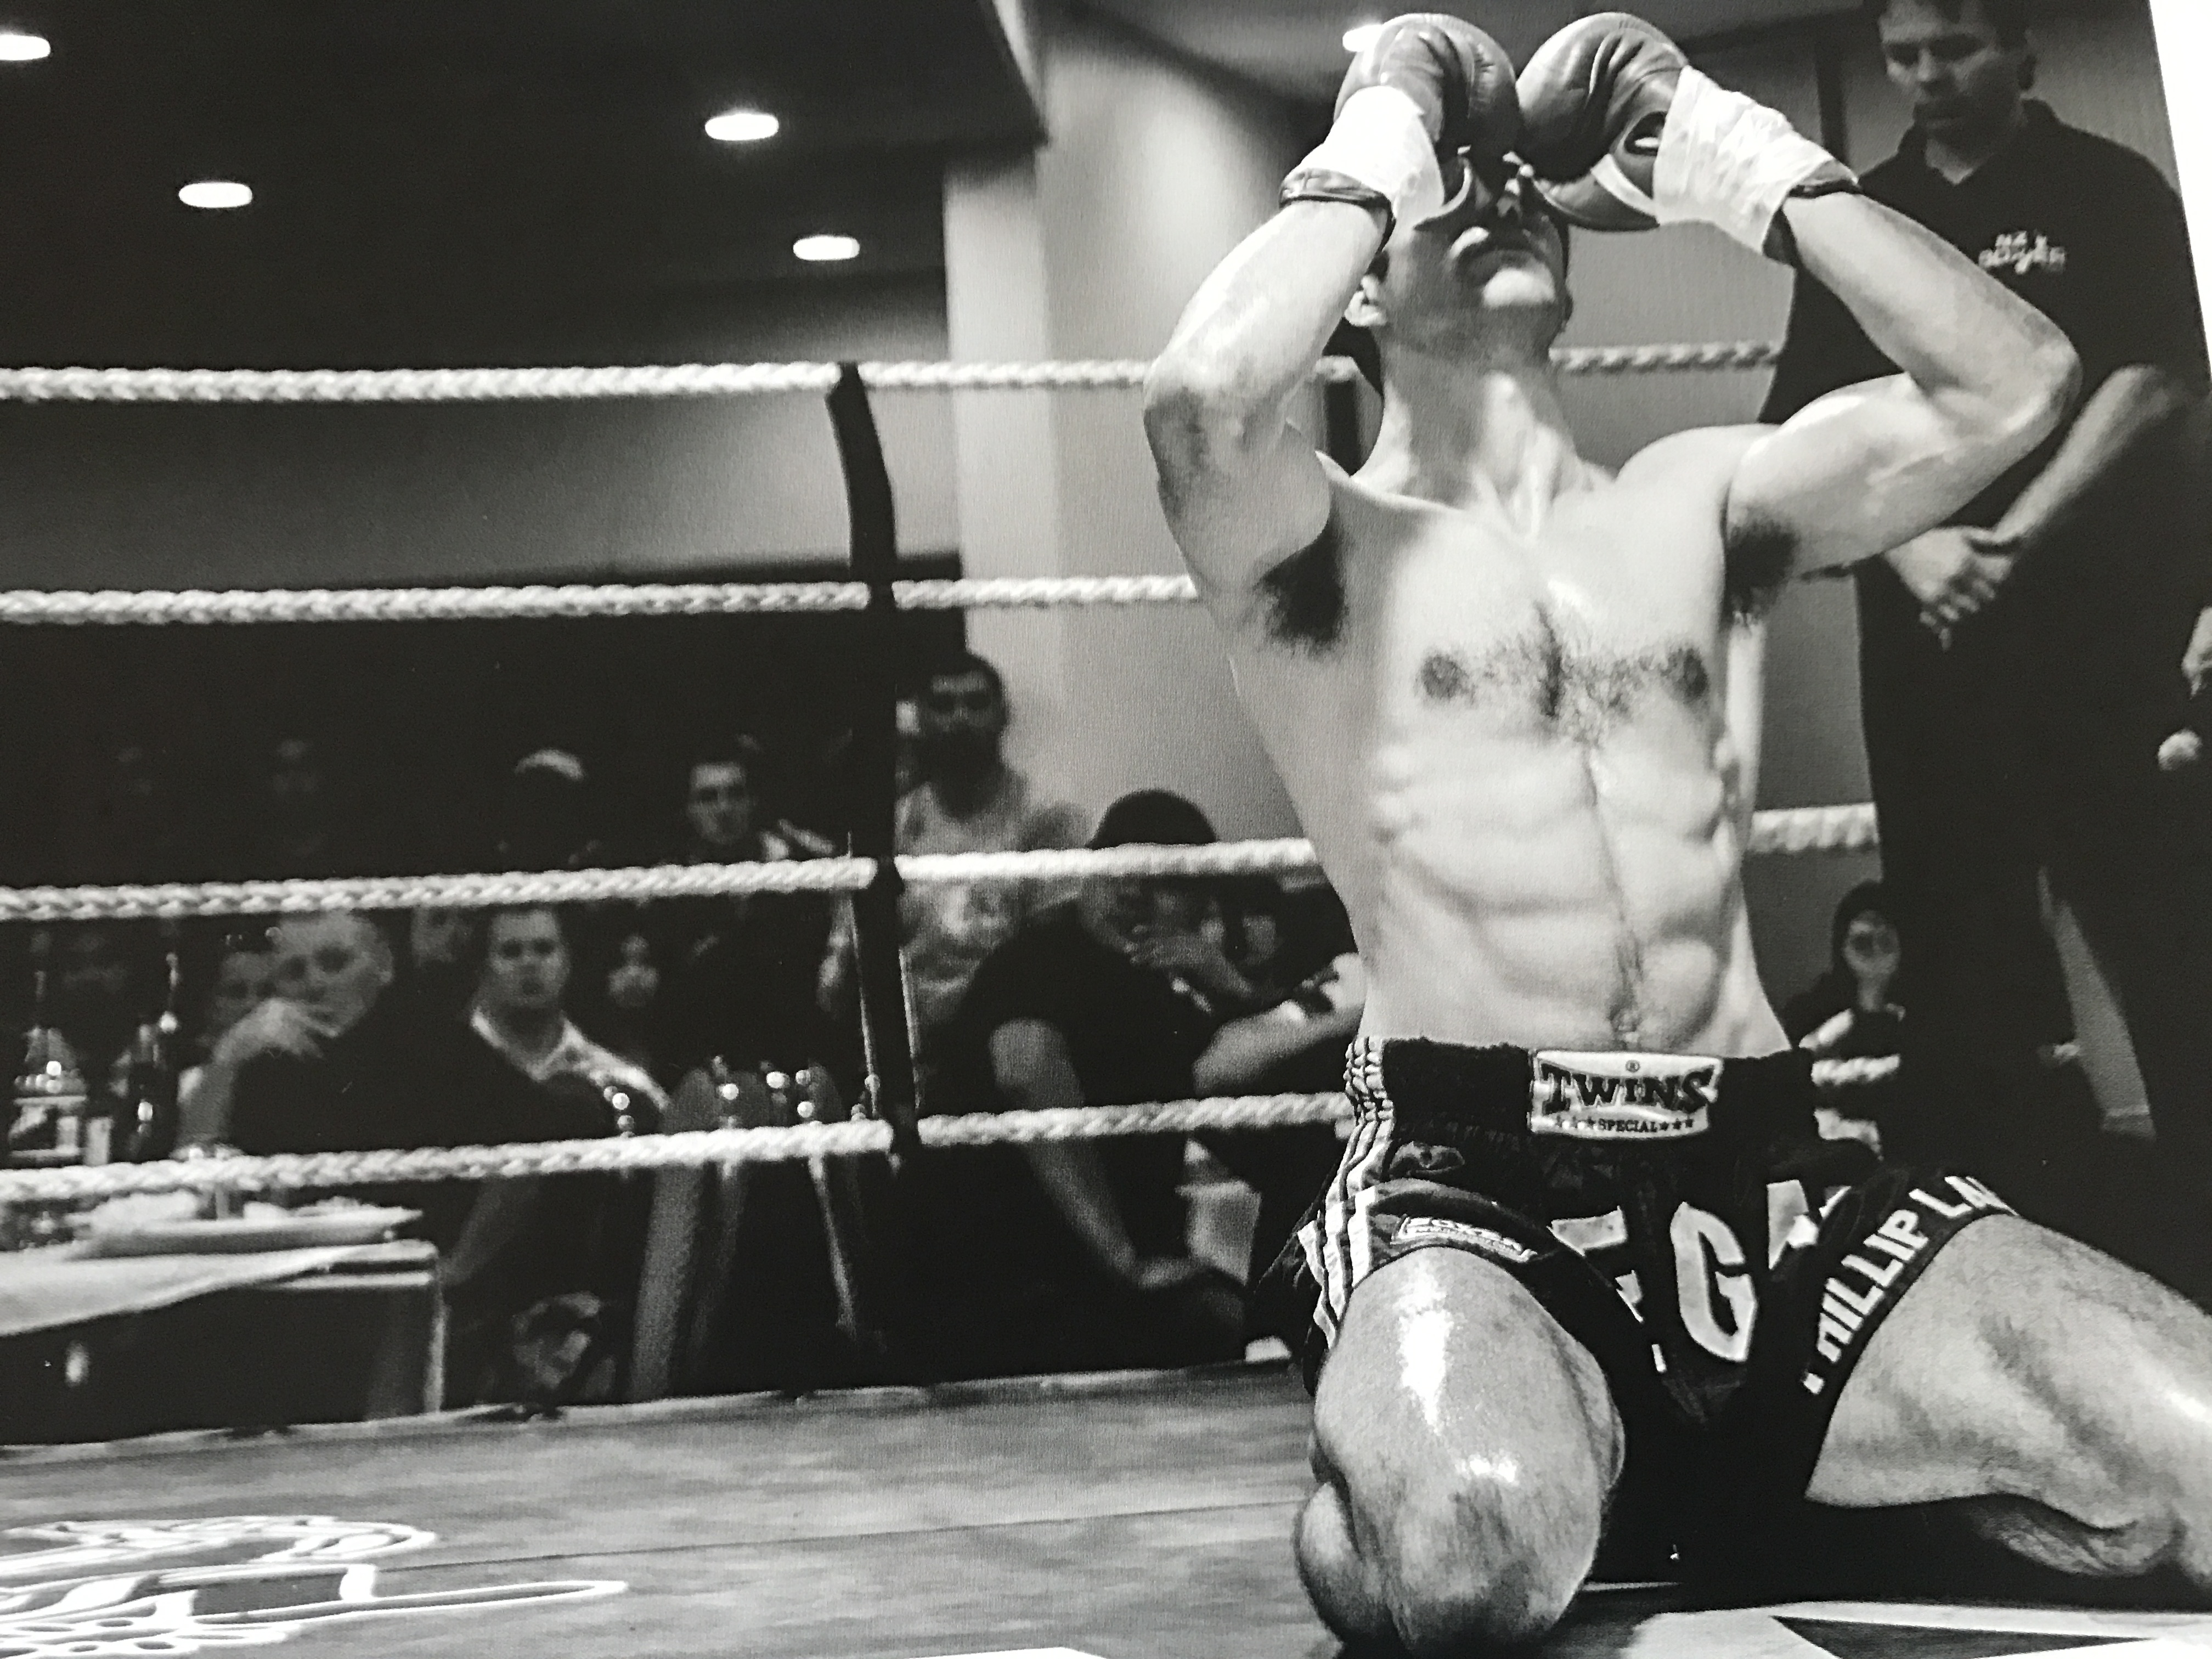 Kickboxing Auckland, Muay Thai Auckland, Fitness Auckland